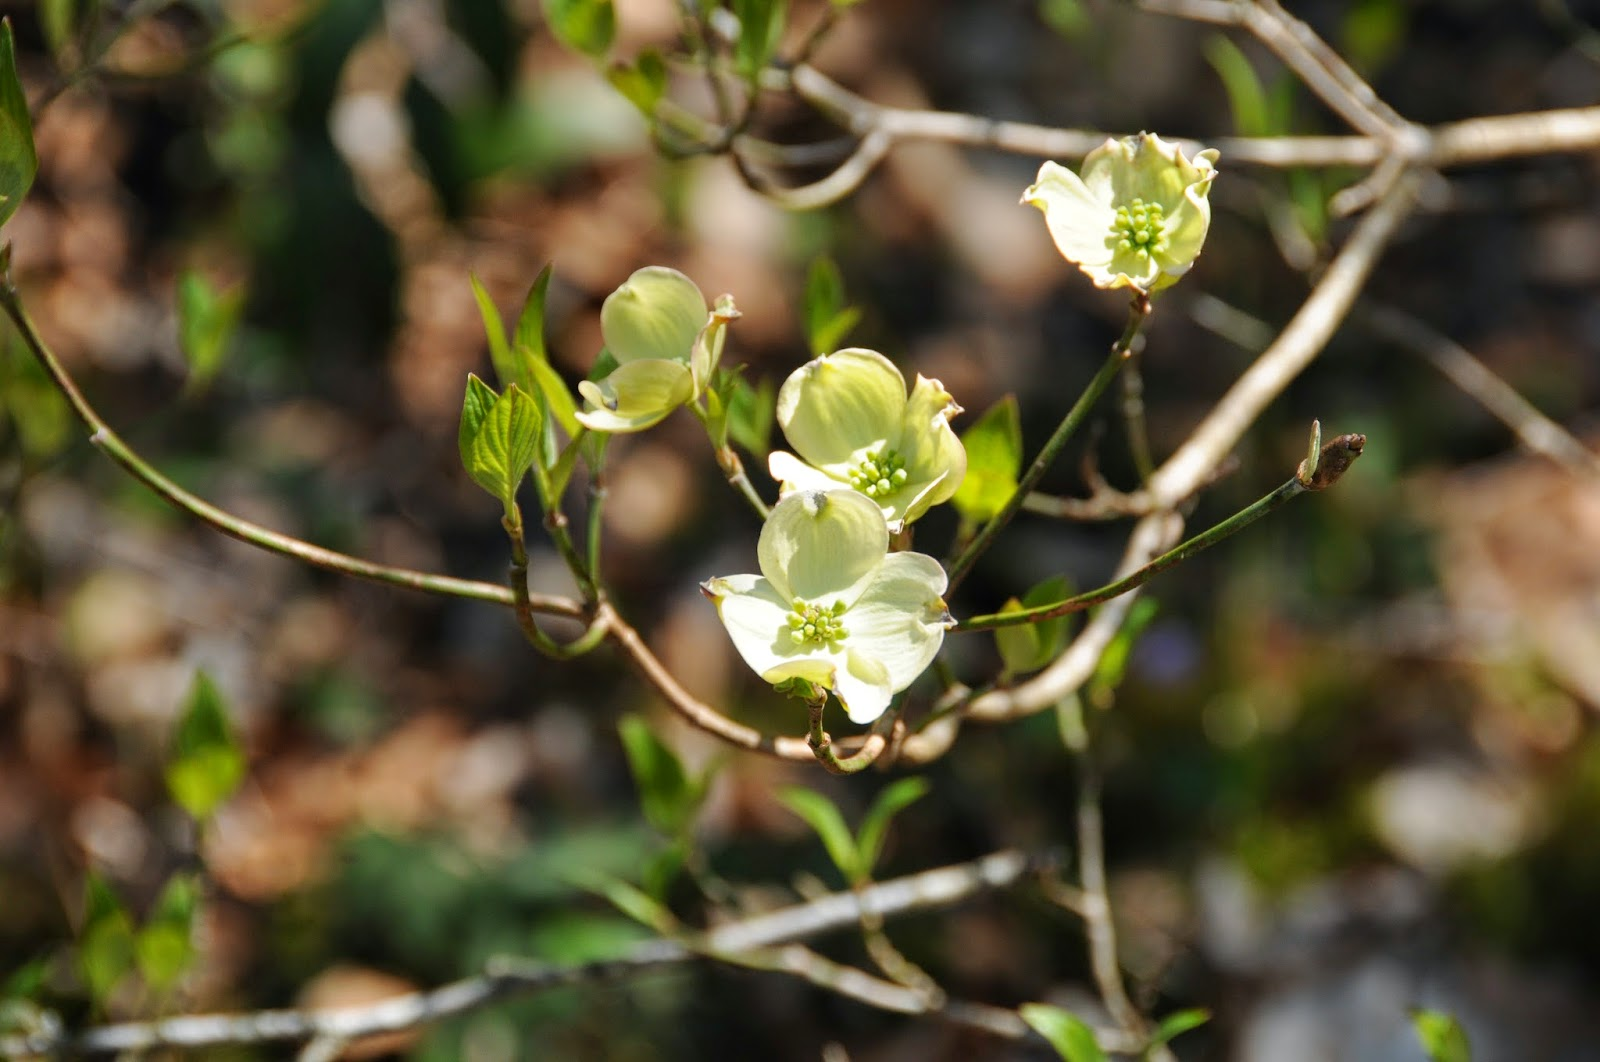 the taxonomic classification for the flowering dogwood Angiosperms: seeds are enclosed in an ovary (fruit), therefore flowering plants gymnosperms angiosperms angiosperms common plant genus pinus-pine acer-maple ilex-holly ficus-fig cornus-dogwood rhododendron-rhododendron quercus-oak scientific classification of plants taxonomy the science of classifying and identifying plants.